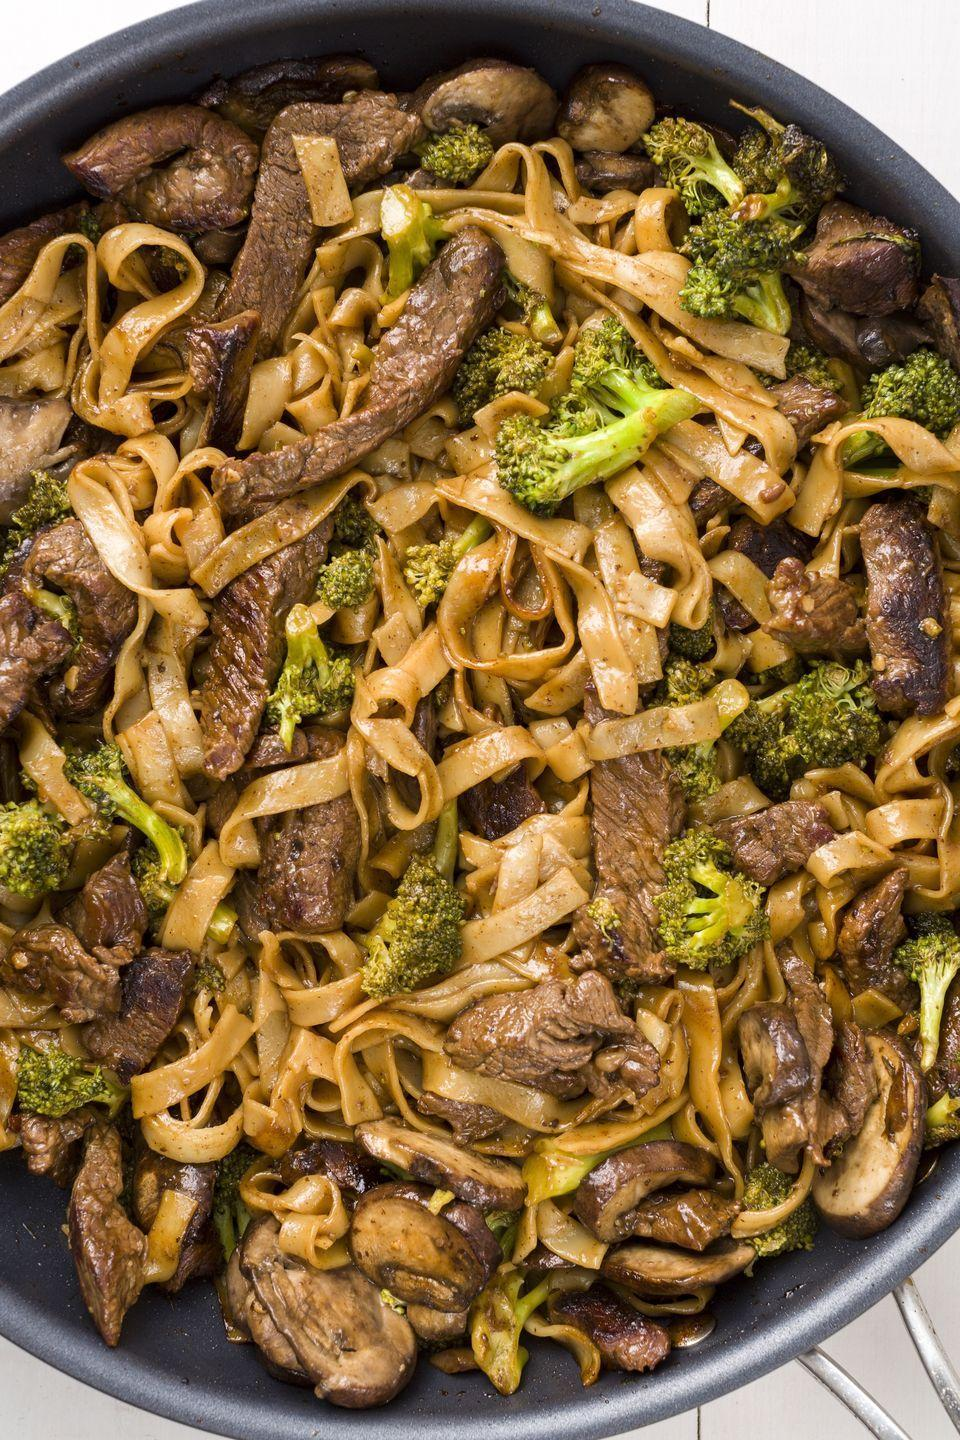 """<p>With soy sauce-infused flank steak and broccoli, these rice noodles are so much better than takeout.</p><p>Get the recipe from <a href=""""/cooking/recipe-ideas/recipes/a45477/beef-and-broccoli-noodles-recipe/"""" data-ylk=""""slk:Delish"""" class=""""link rapid-noclick-resp"""">Delish</a>.</p>"""